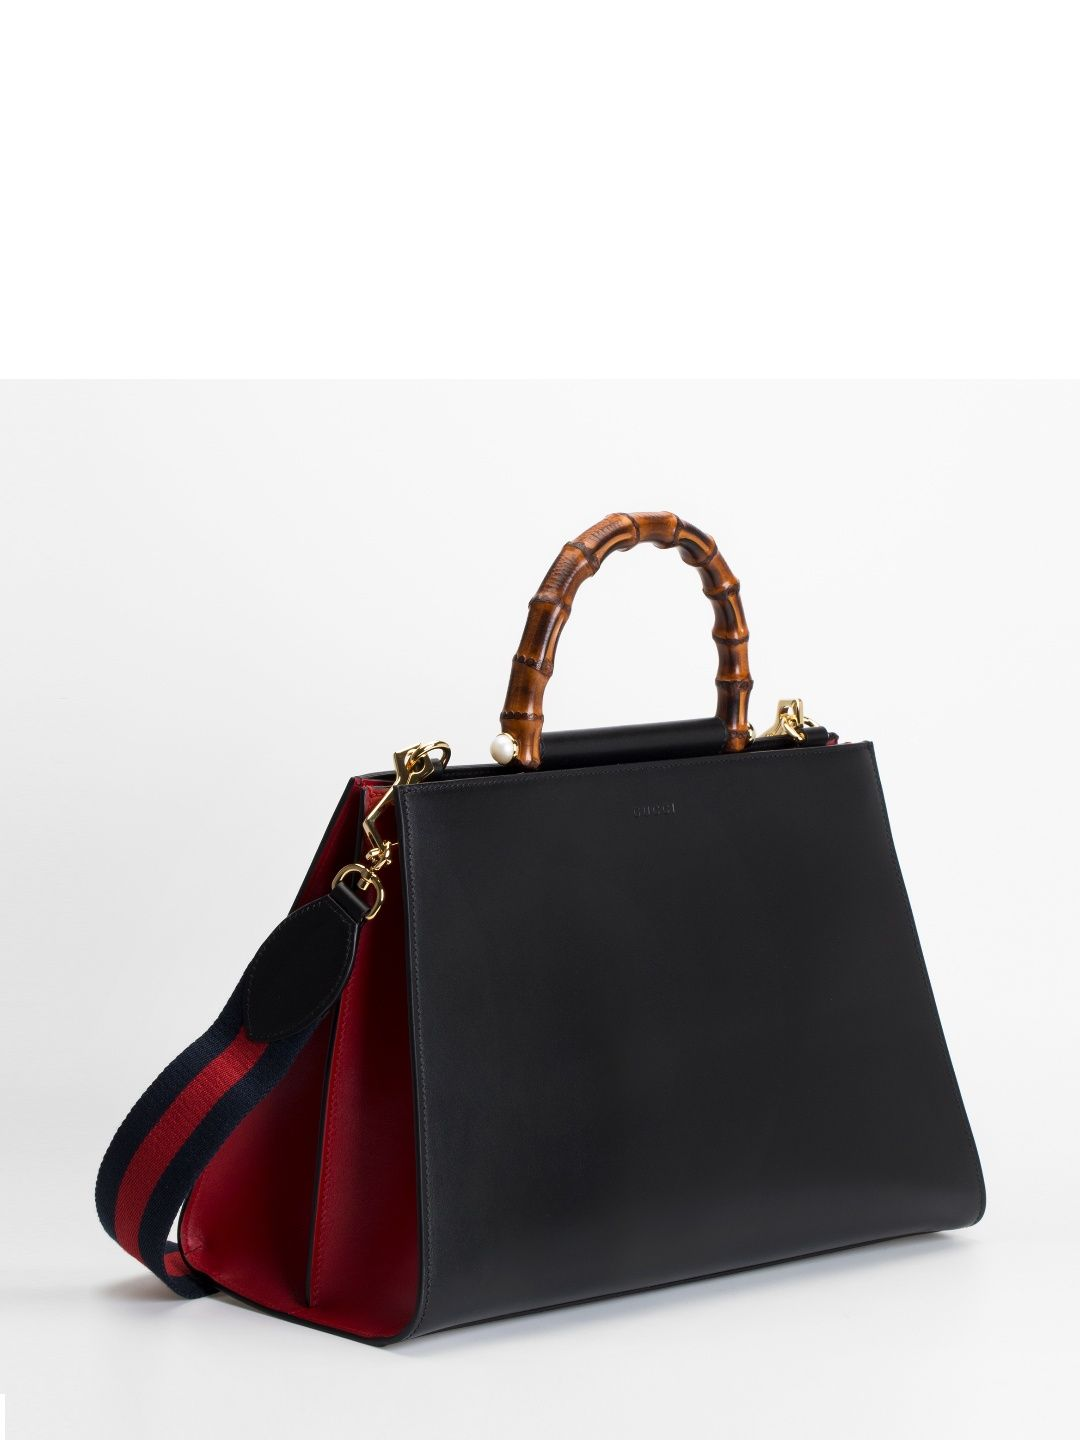 ffc486a61a1 GUCCI NYMPHEA.  gucci  bags  shoulder bags  hand bags  nylon  suede  lining